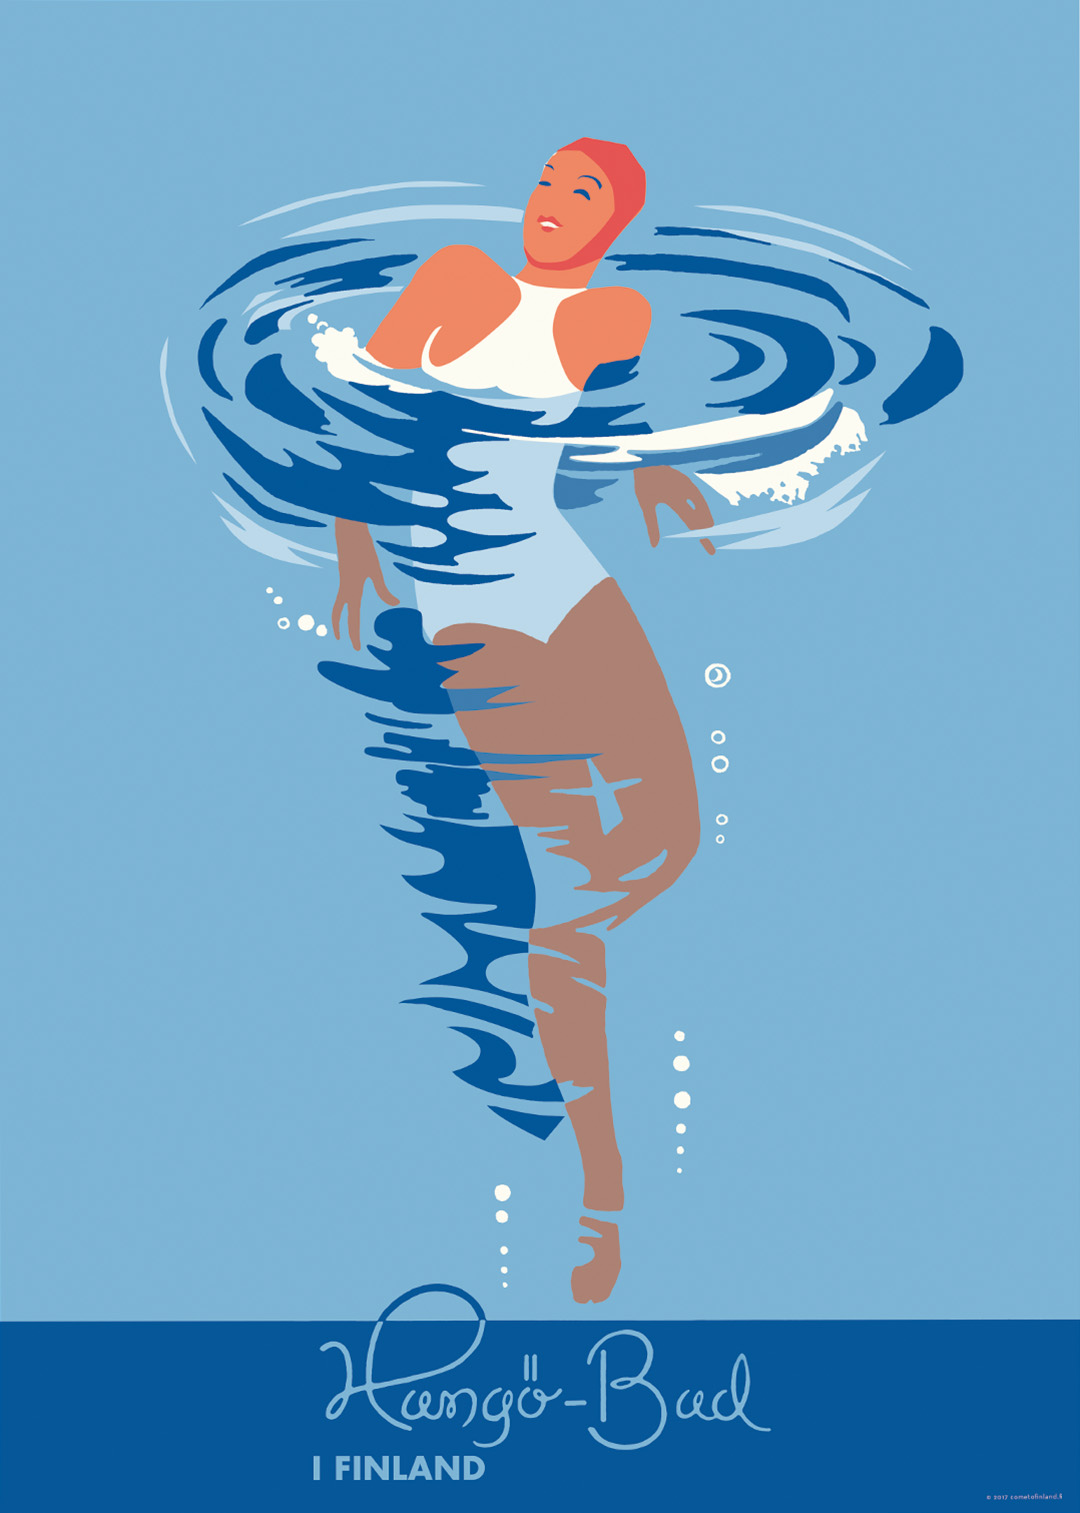 Bad 70 Cm.The Hanko Swimmer Poster 50 X 70 Cm On Demand Print